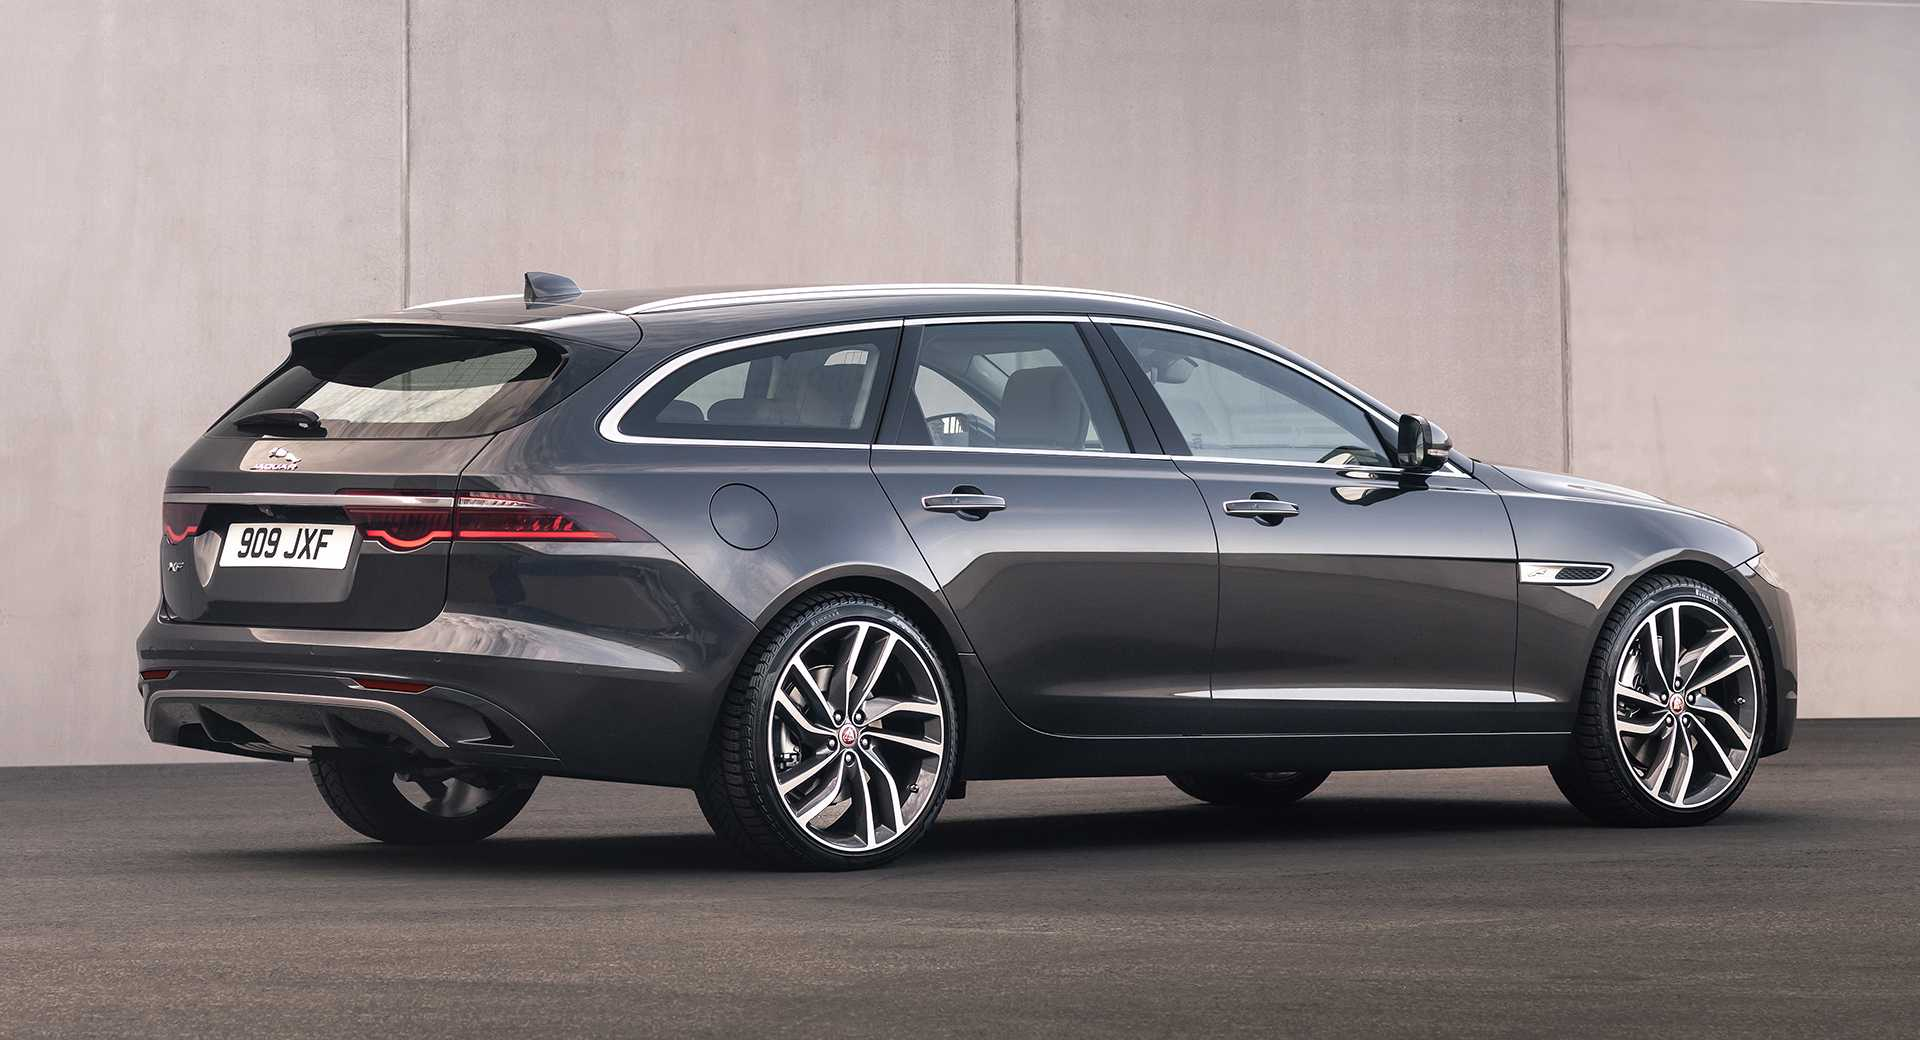 2021 Jaguar XF Updated with an Impressive Interior Design and Dual 4-Cylinder Engine